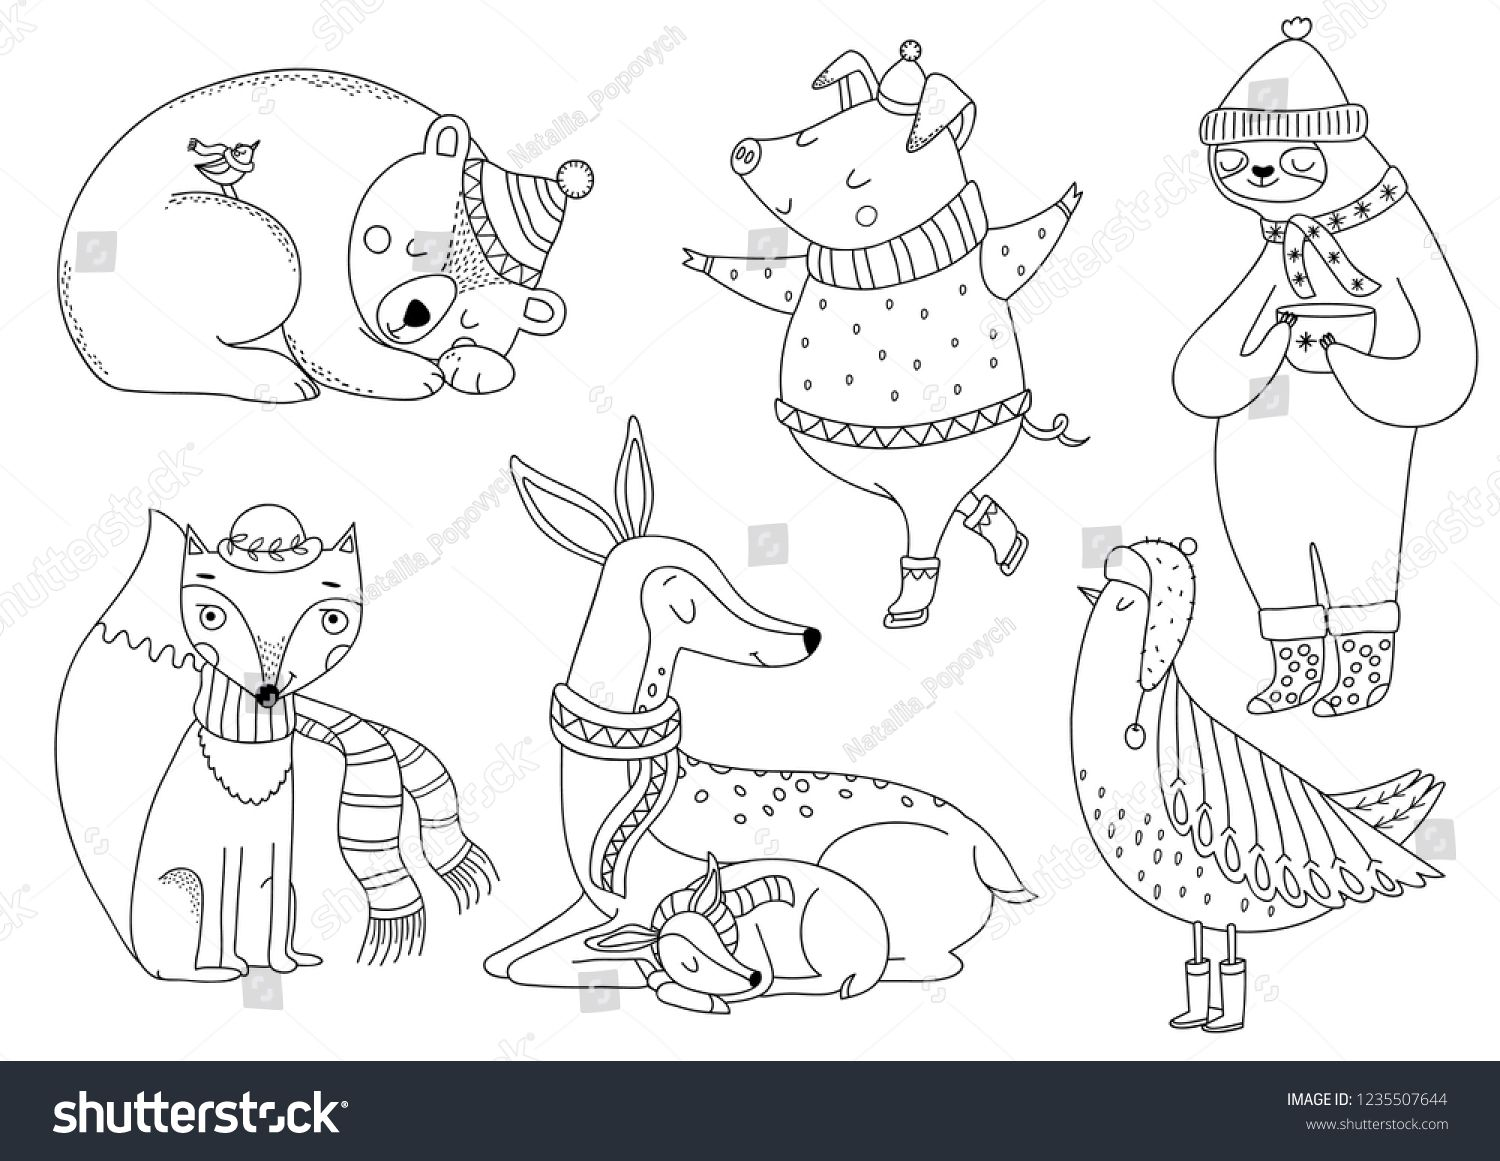 Cute animals coloring page. Outline animal characters